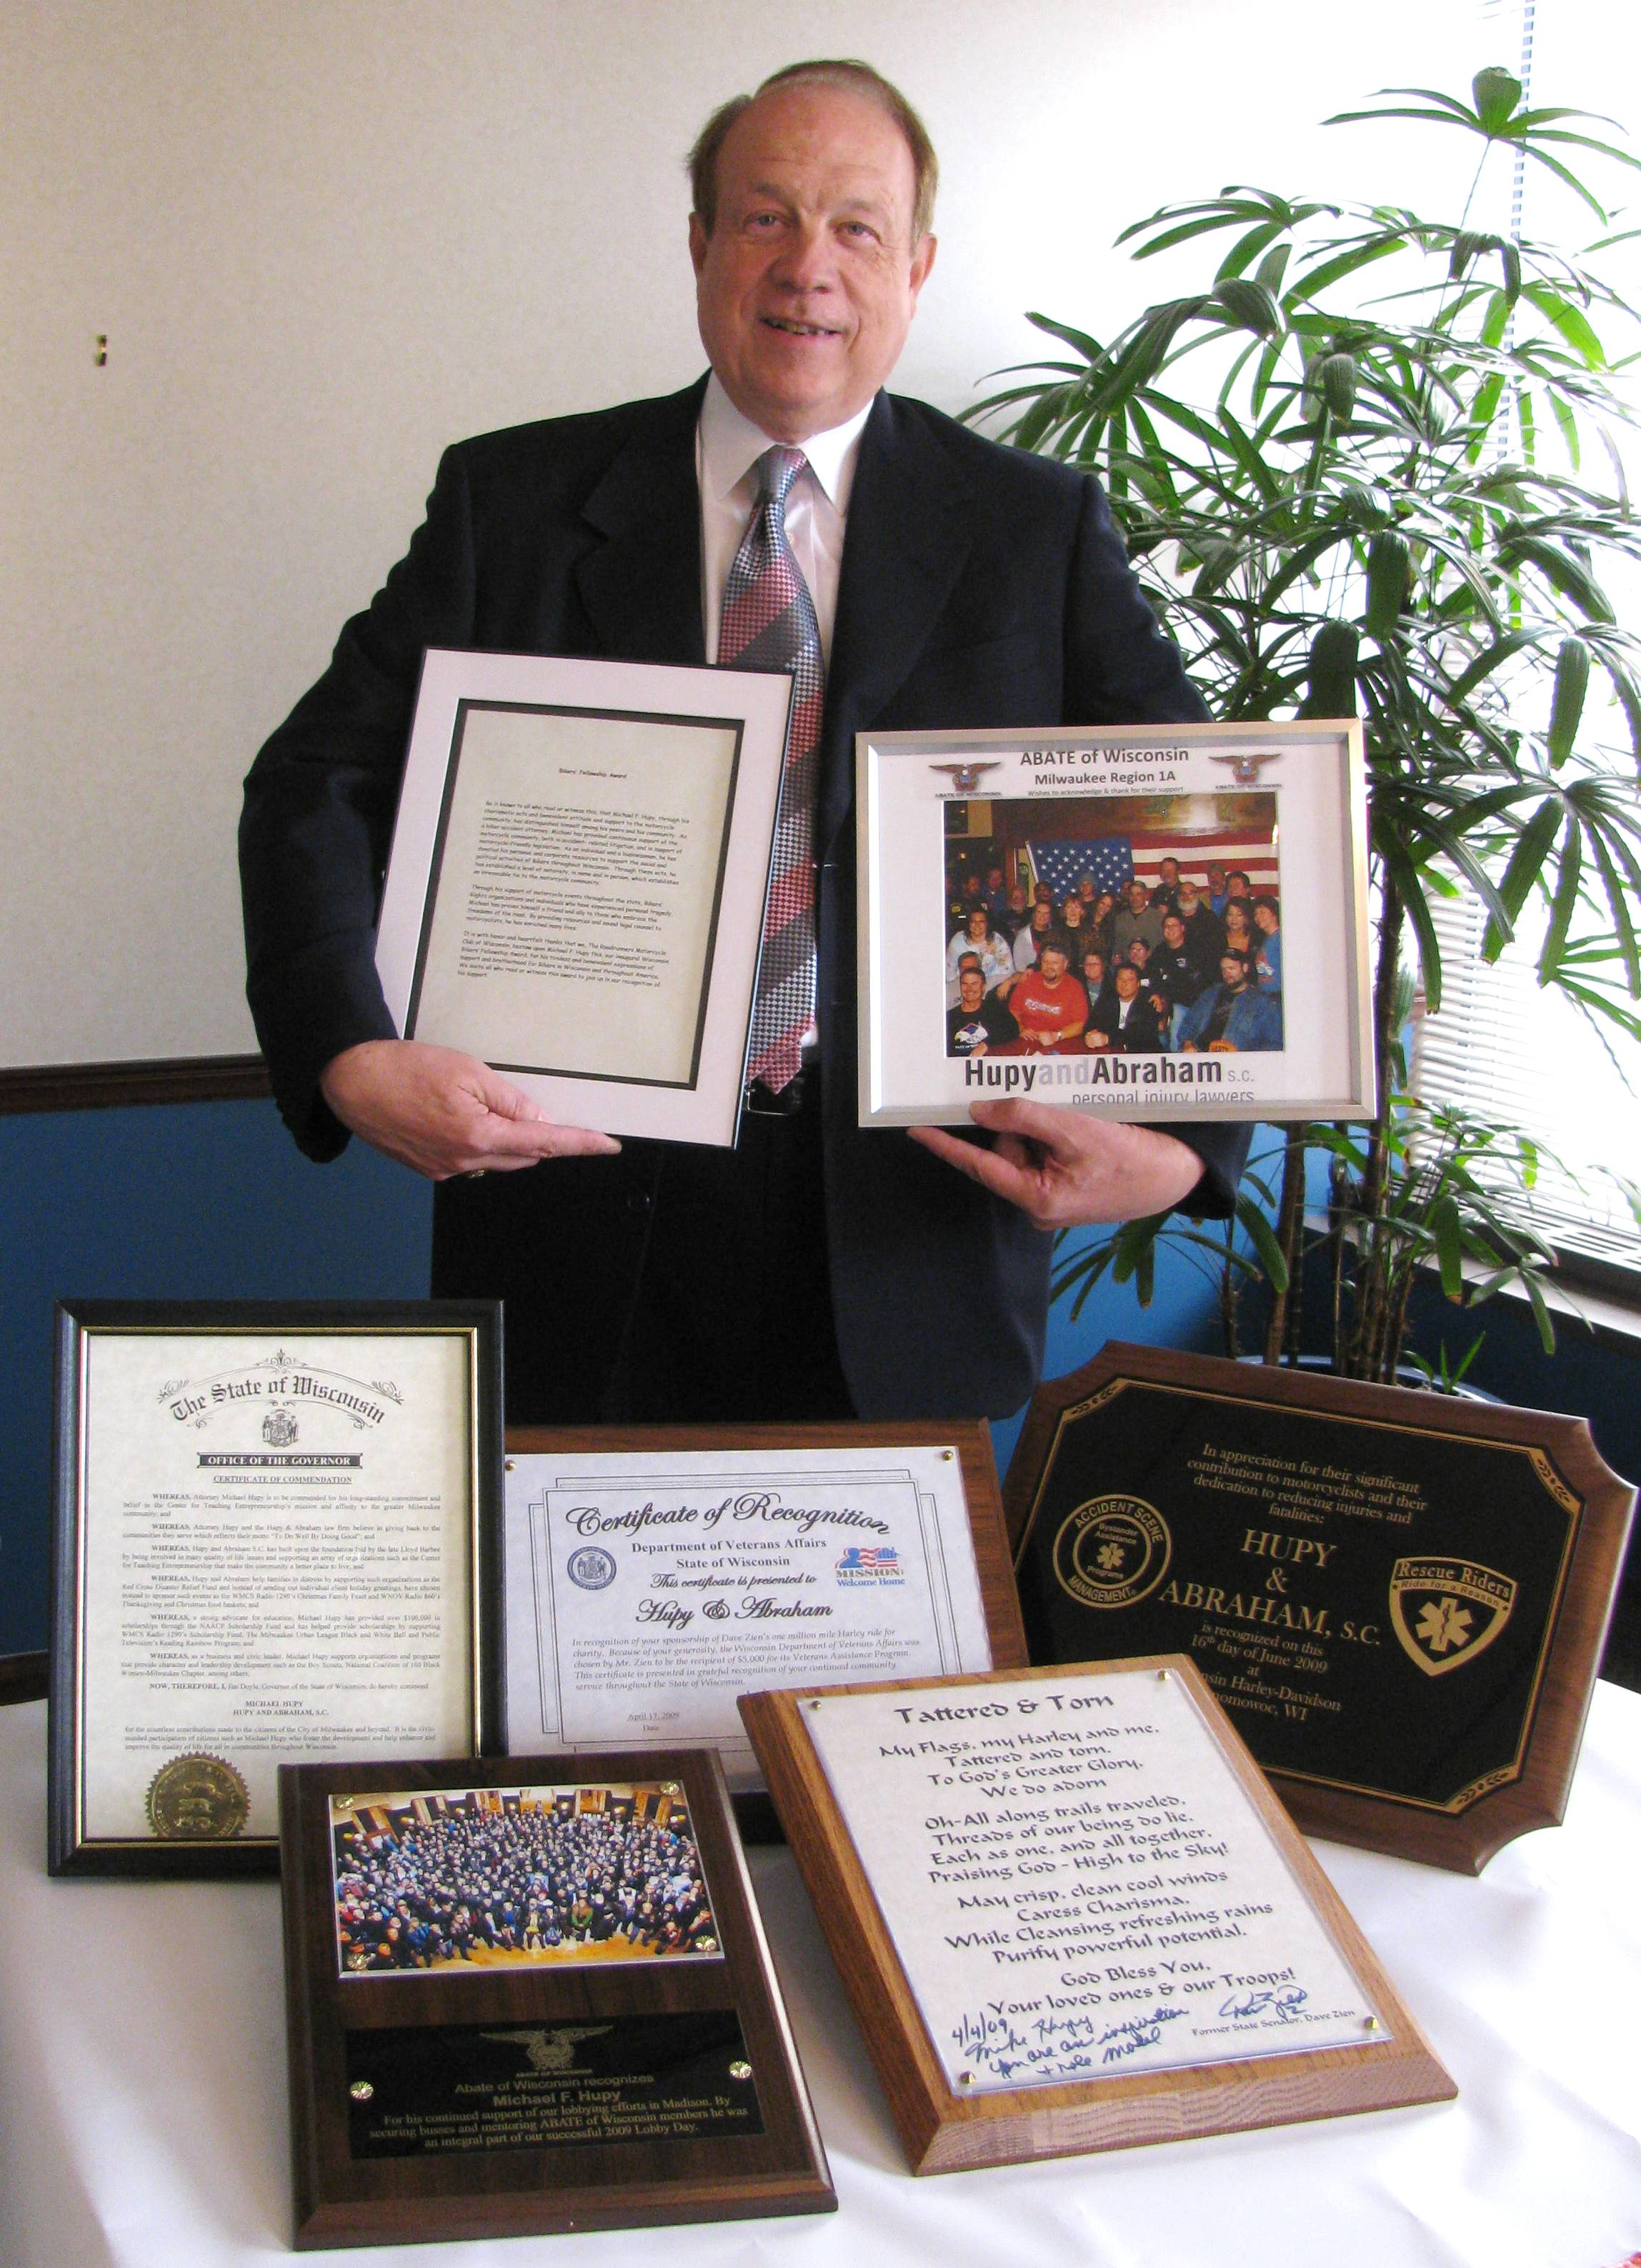 Attorney Hupy holds awards and commendations